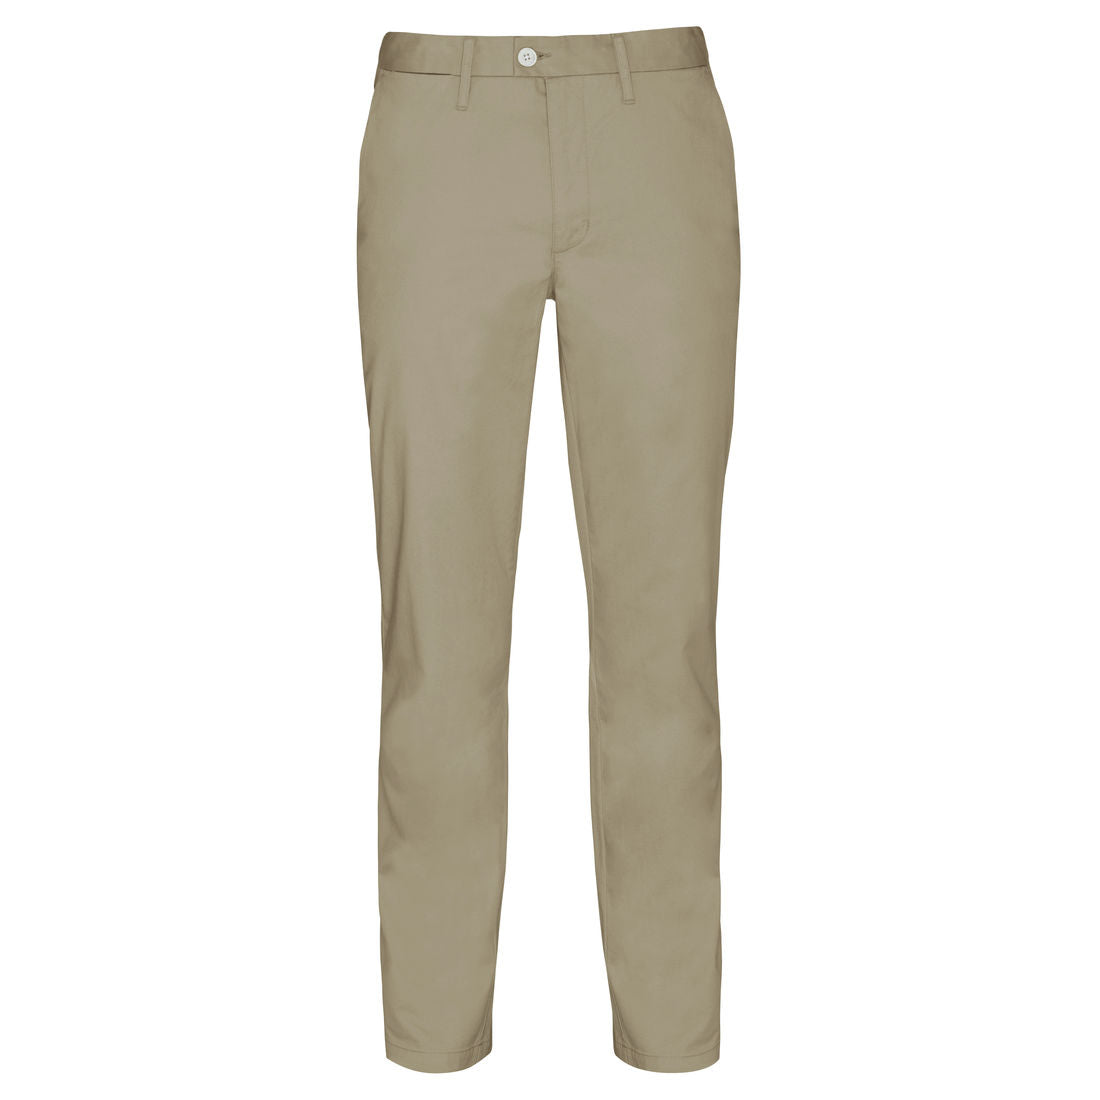 R.M.Williams Gibb Chino Regular Fit Buckskin